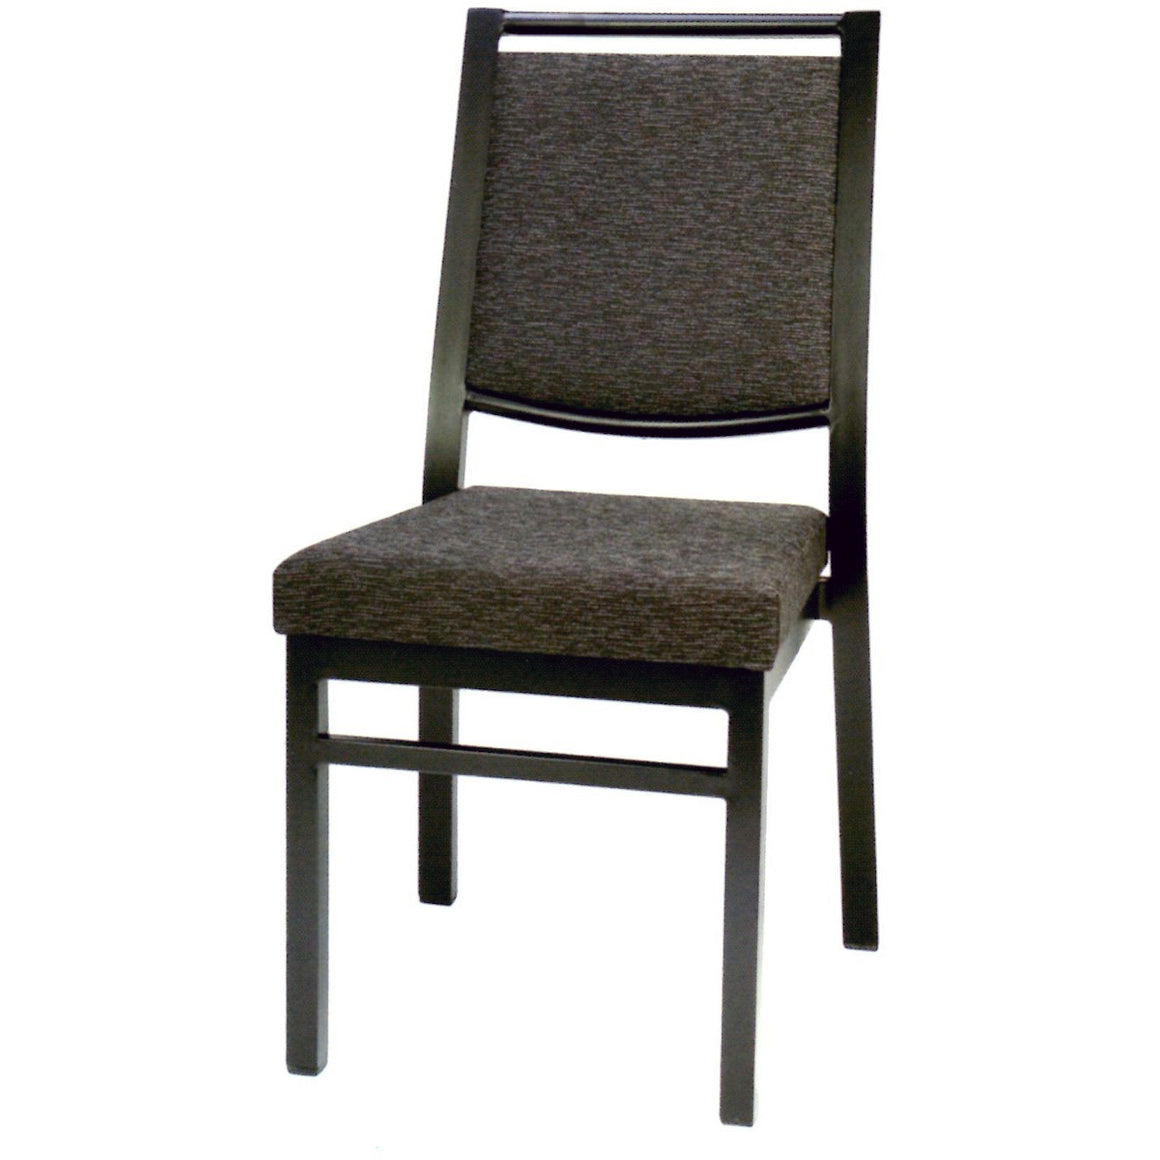 Stacking Chair 2010G, Chairs, Cammac, - Cammac